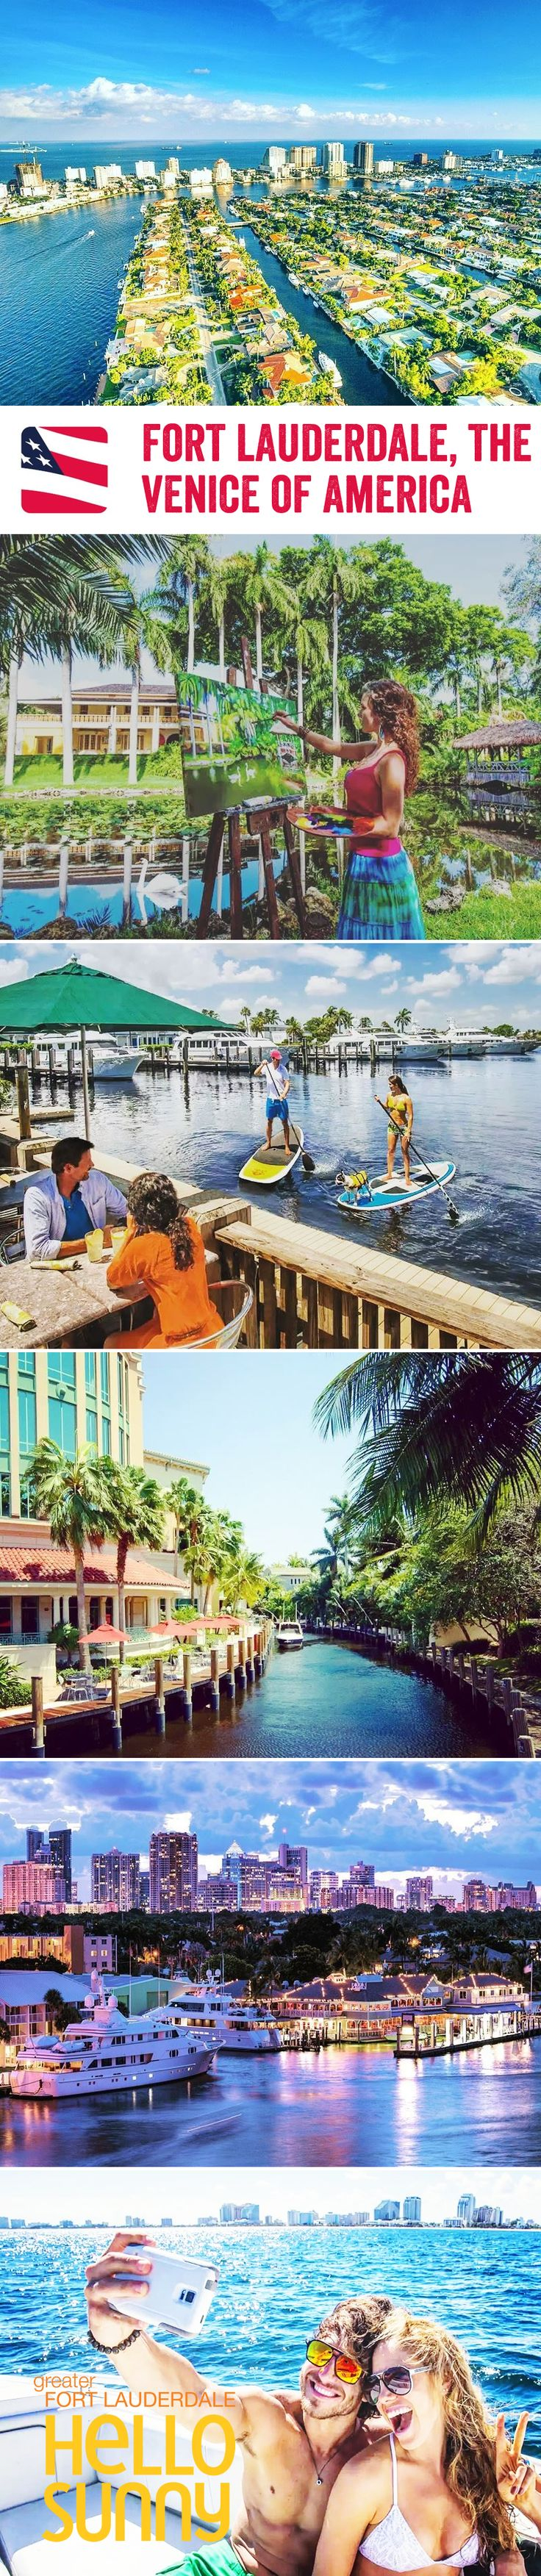 Millionaire's Row, Las Olas Boulevard, a coach that turns into a boat…come and discover Fort Lauderdale, the Venice of America